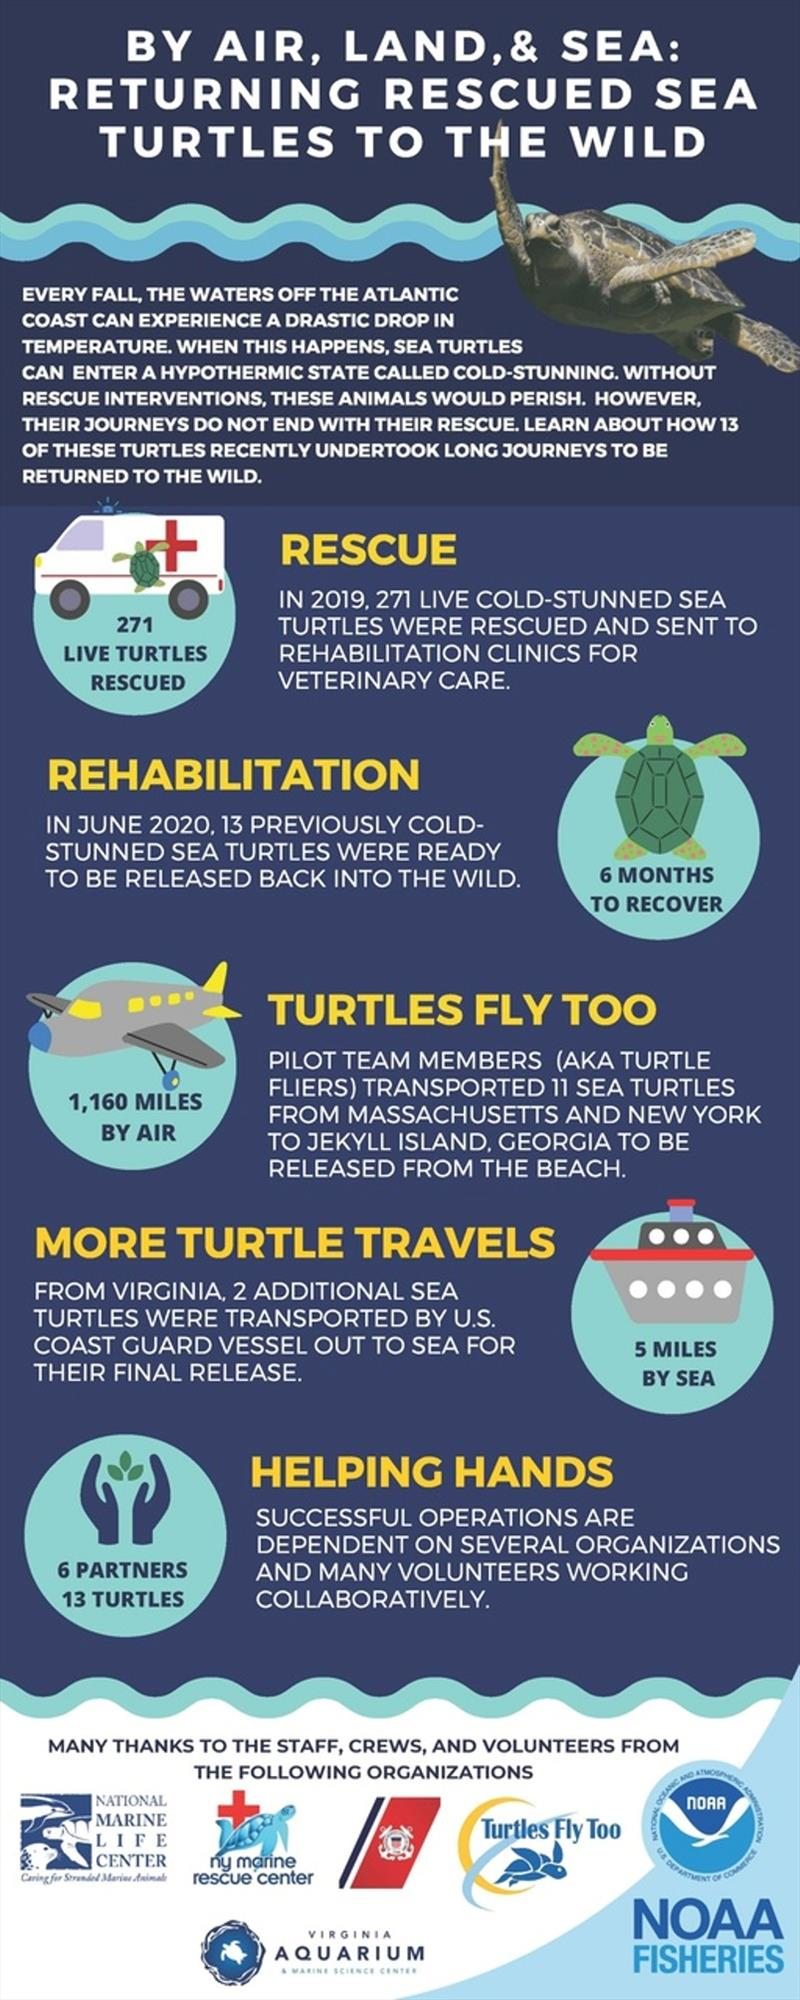 Returning rescued sea turtles to the wild by land, air, and sea - photo © NOAA Fisheries